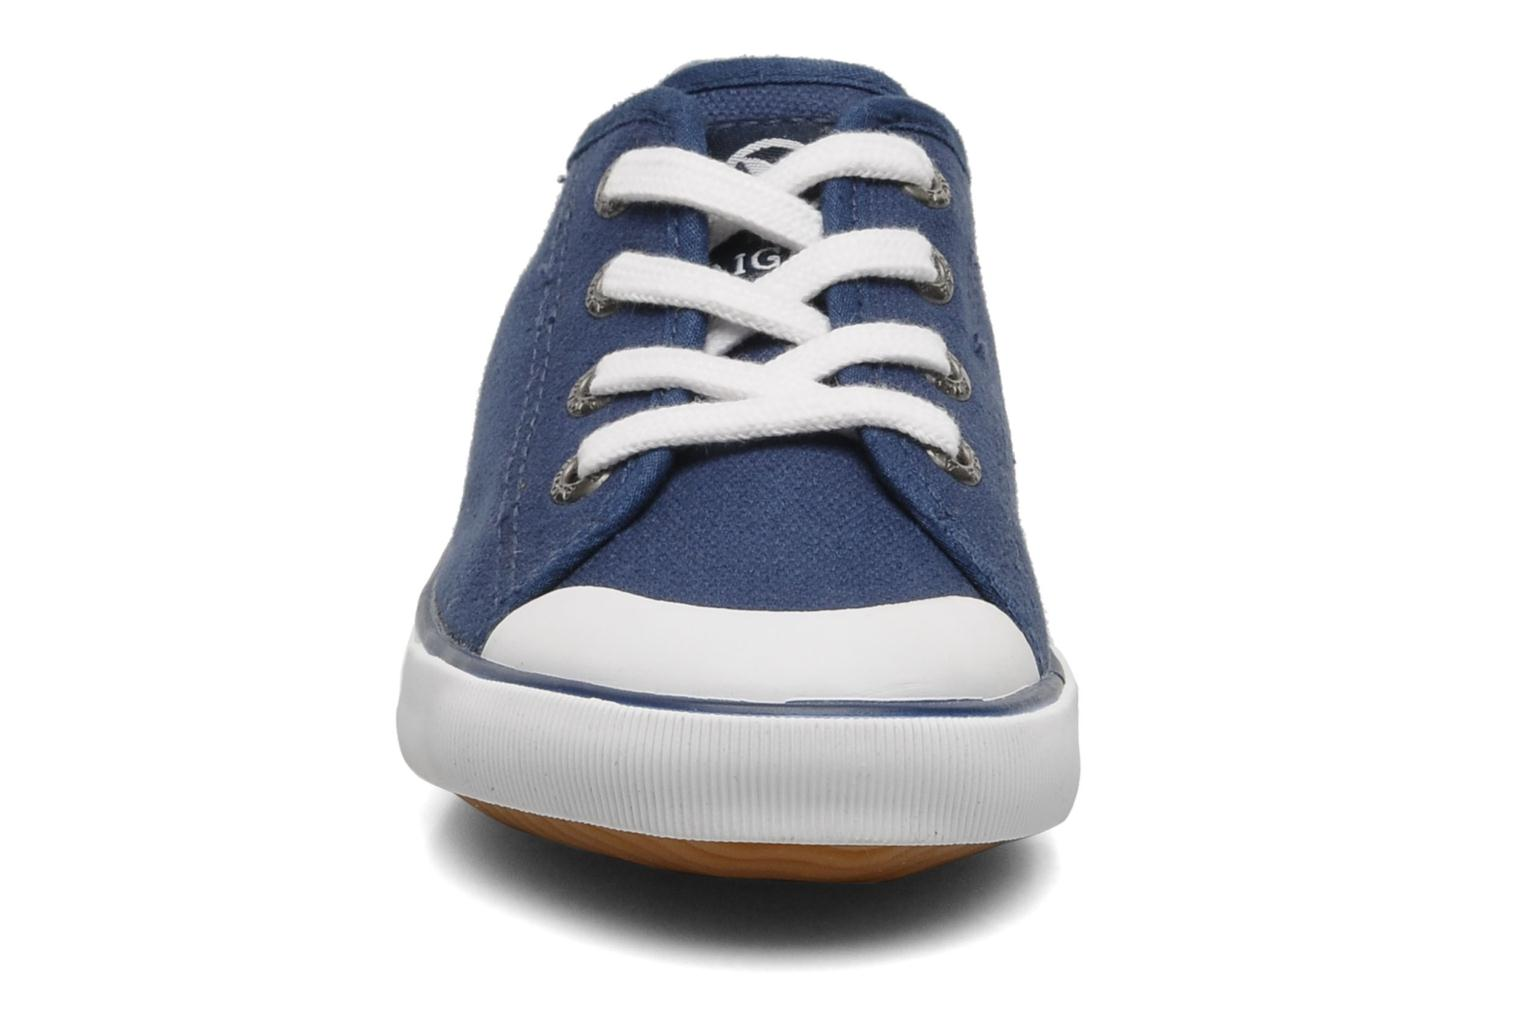 Borizo Kid Navy